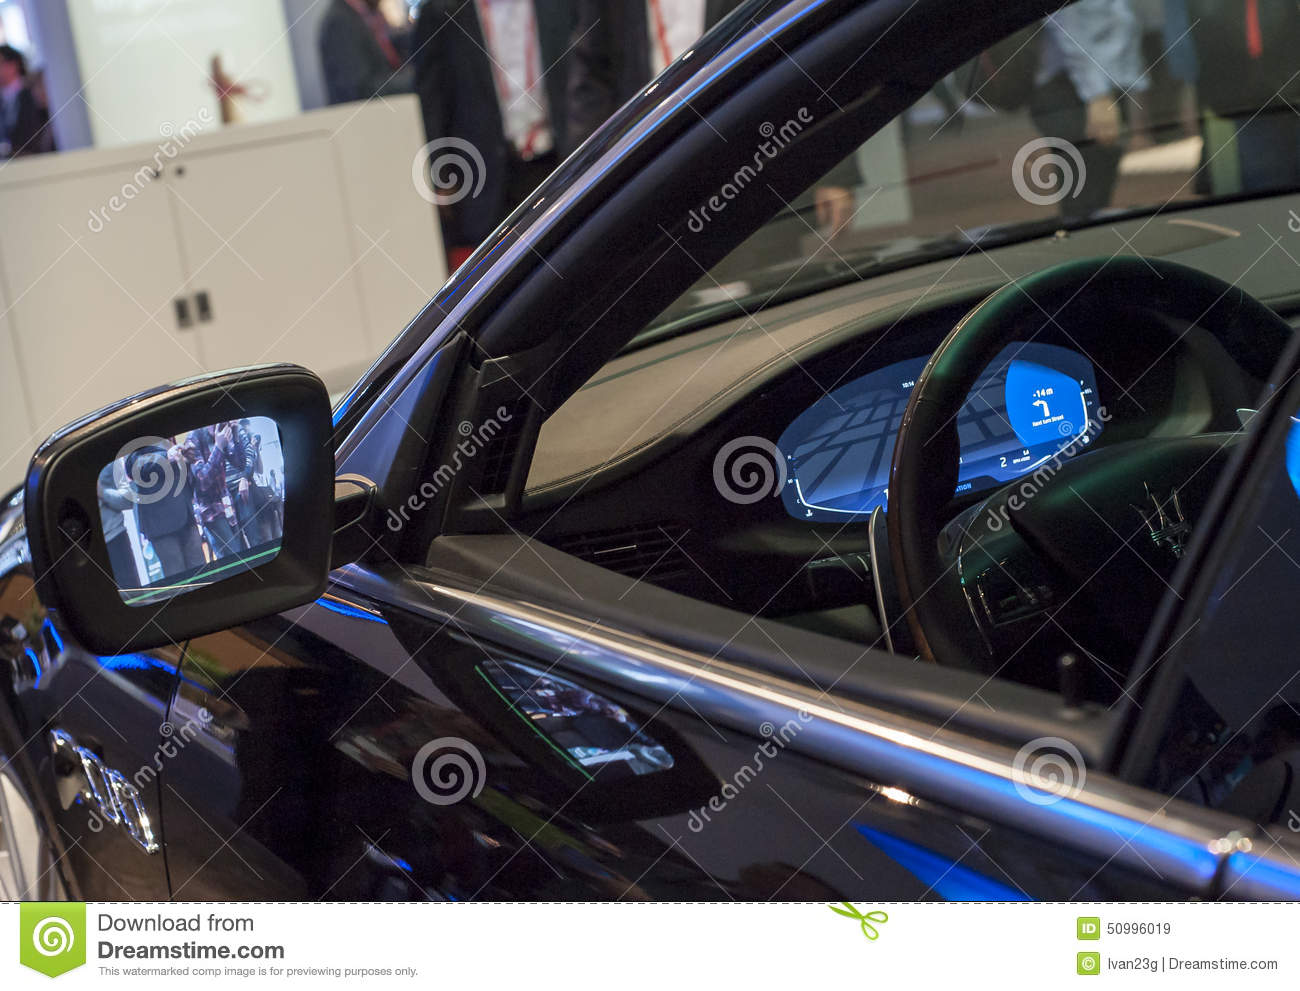 MOBILE WORLD CONGRESS 2015 - NEW CARS TECHNOLOGY